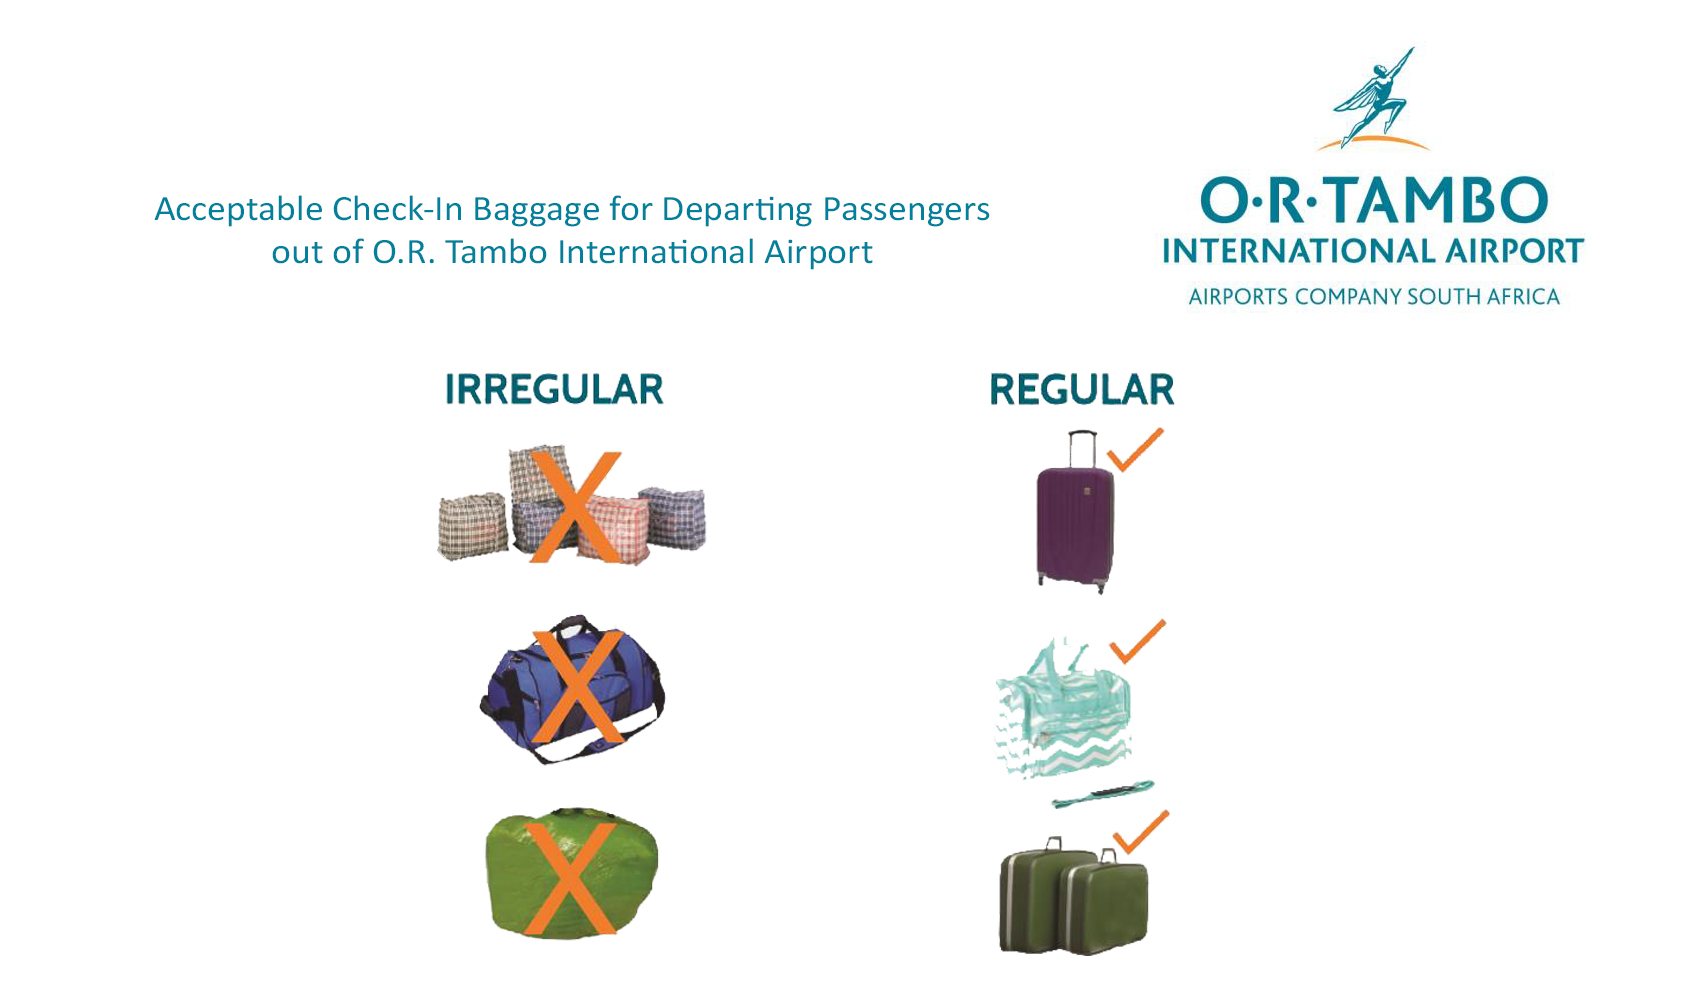 ORTambo_Acceptable_Check-In_Baggage